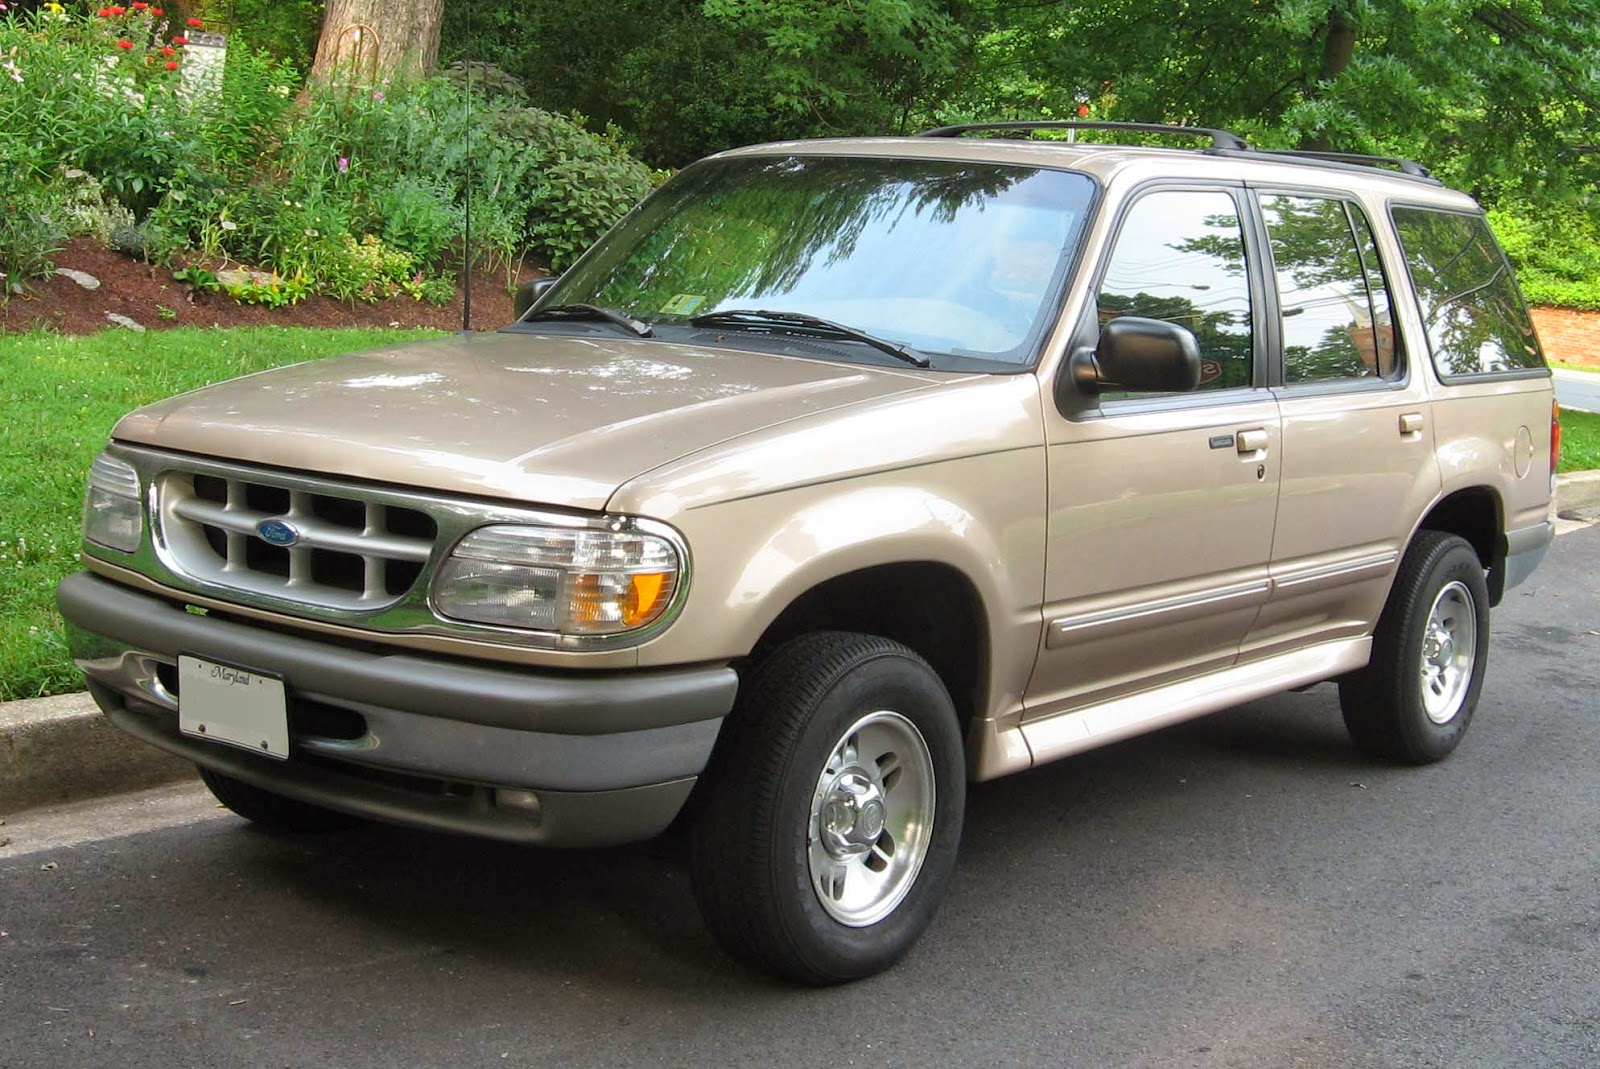 1995 Ford Explorer Owners Manual Pdf FordPrice us